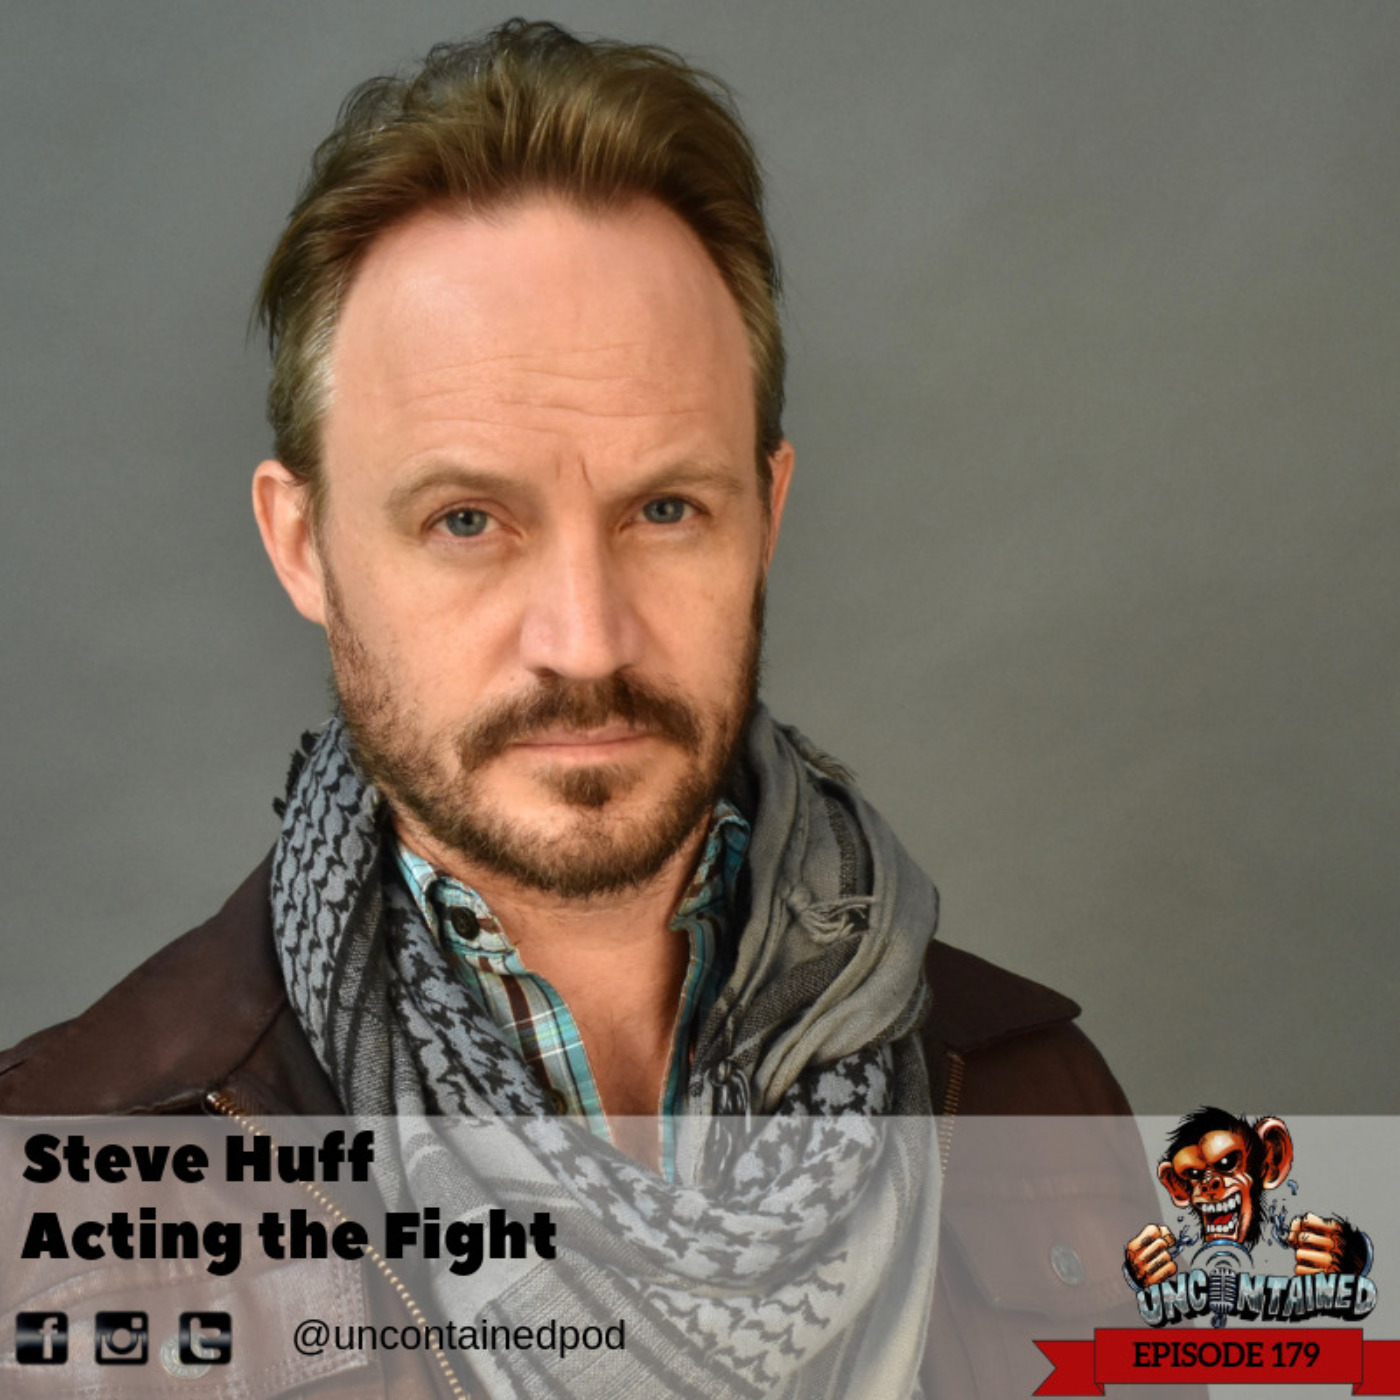 Episode 179: Steve Huff - Acting the Fight